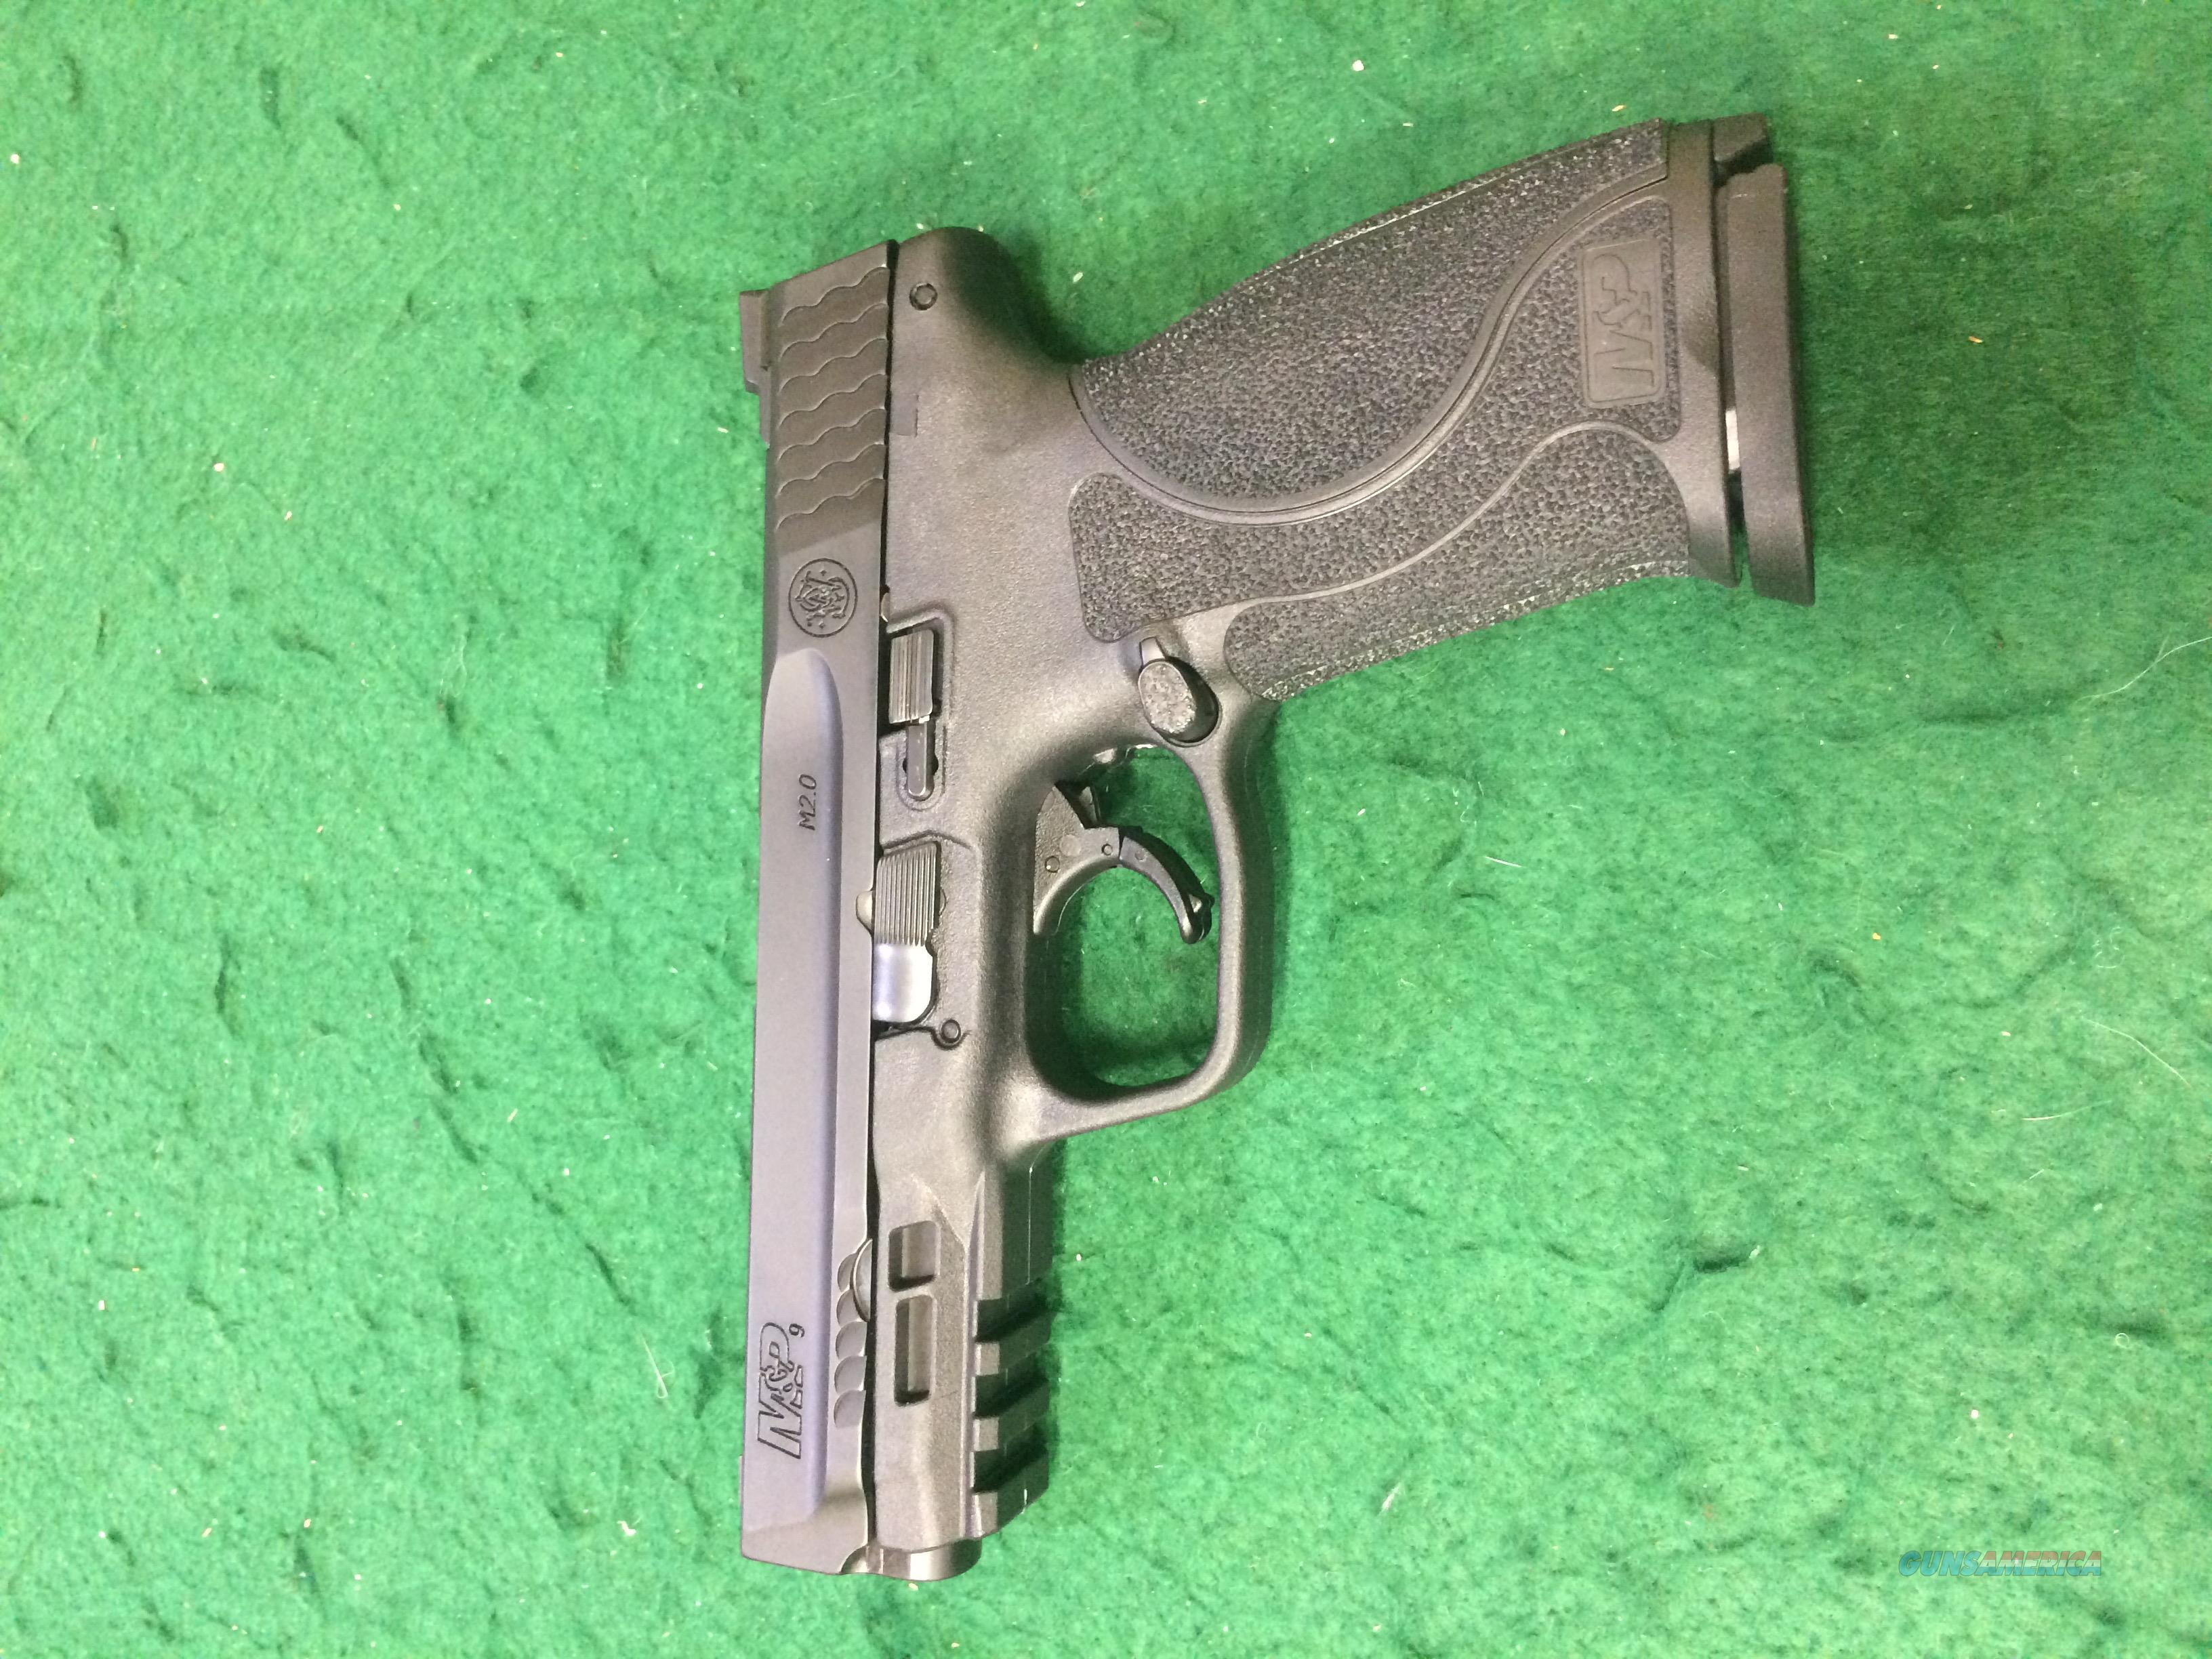 Smith & Wesson - M&P 2.0  Guns > Pistols > Smith & Wesson Pistols - Autos > Polymer Frame